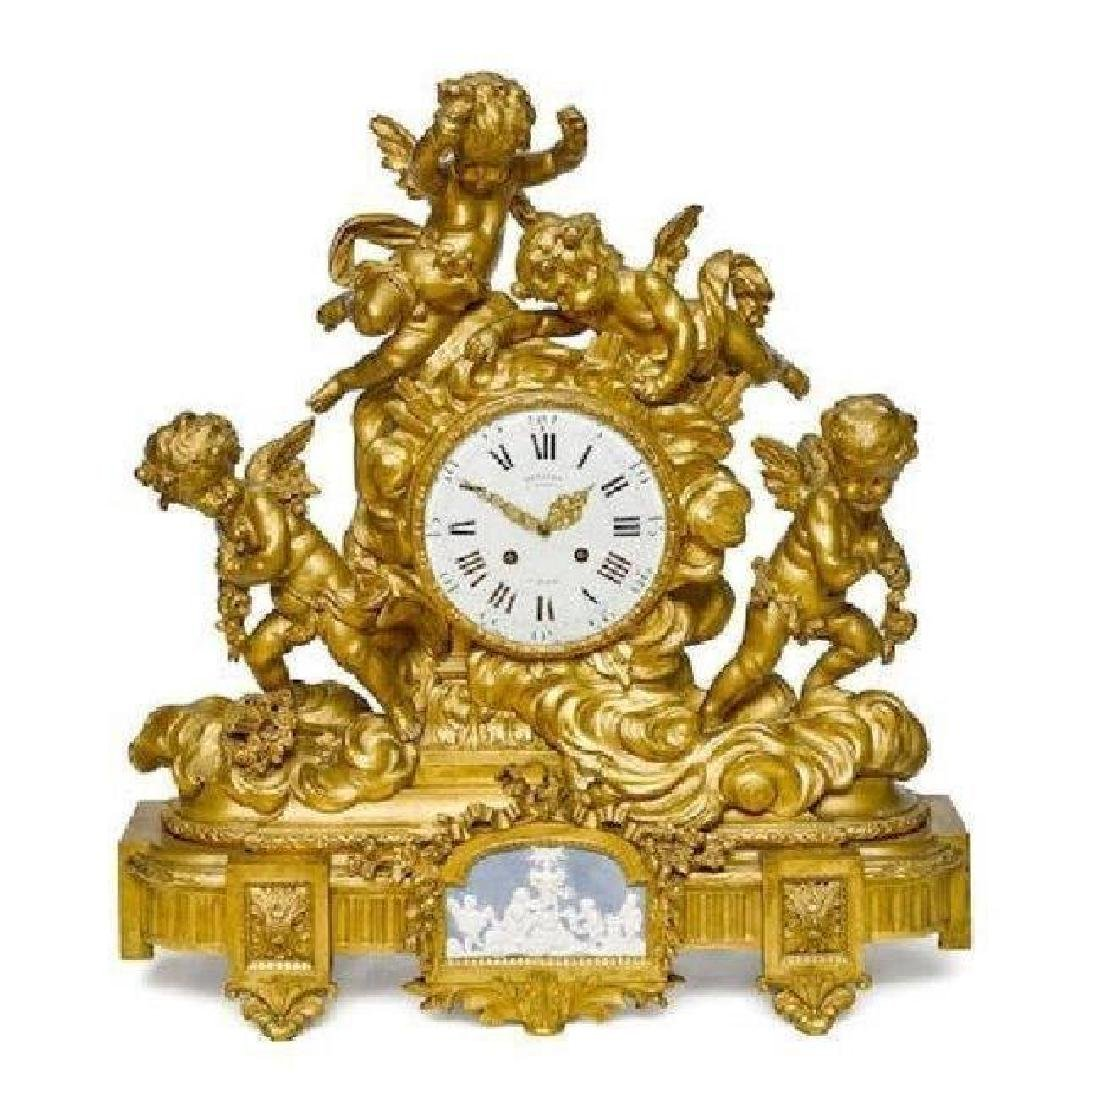 MONUMENTAL DORE BRONZE FIGURAL CLOCK BY DENIER